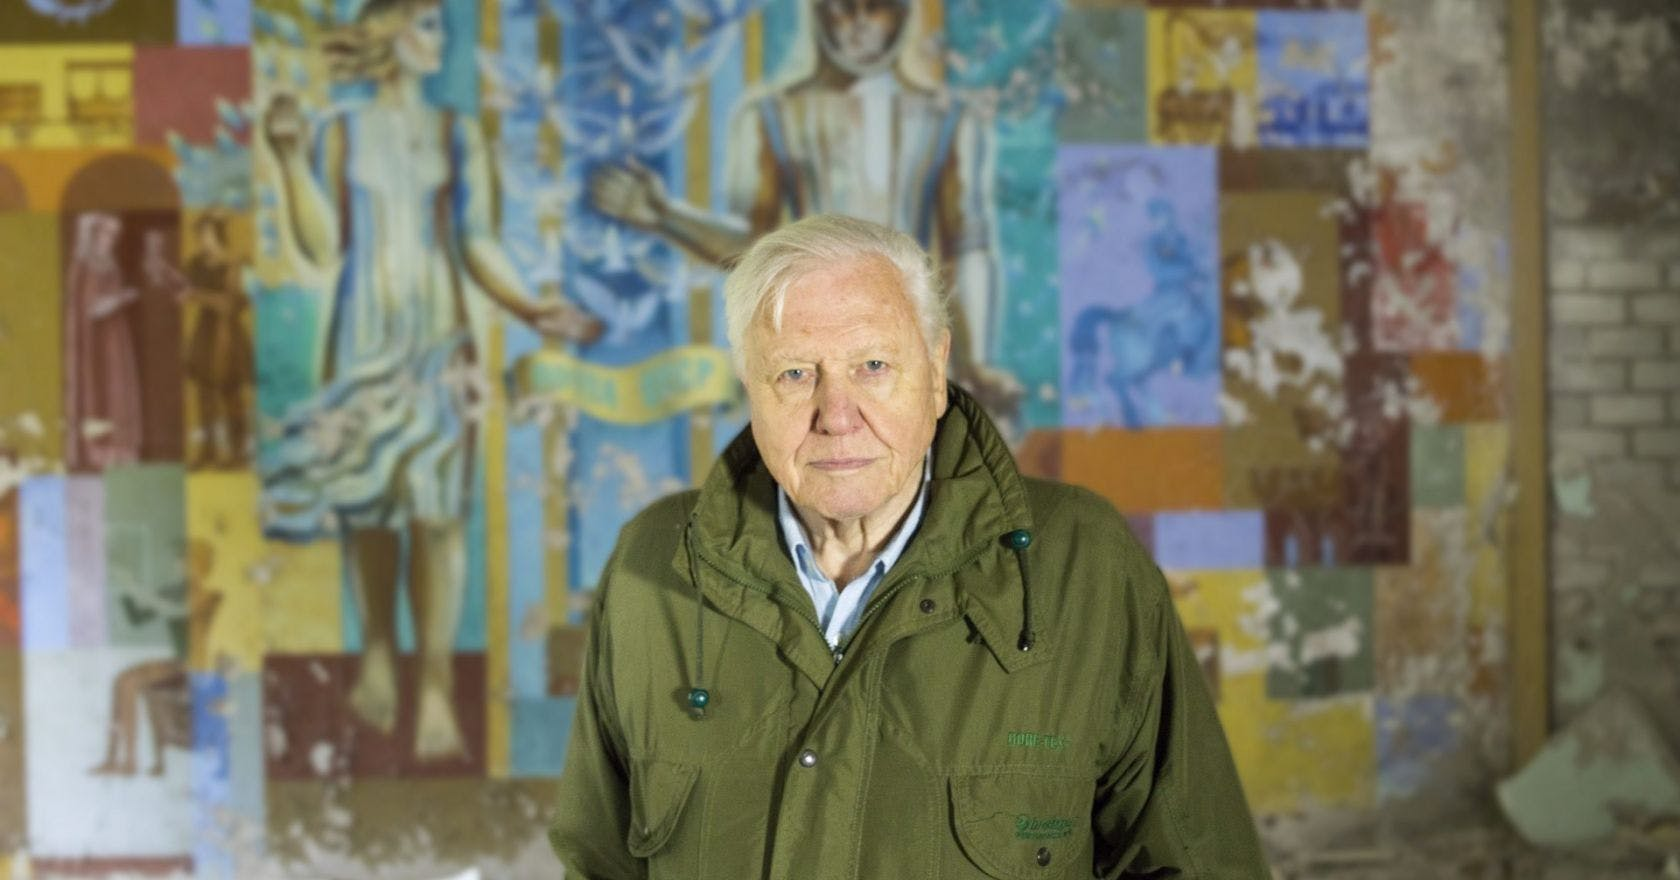 28-sir-david-attenborough-pictured-in-chernobyl-ukraine-while-filming-david-attenborough_-a-life-on-our-planet-1680x880